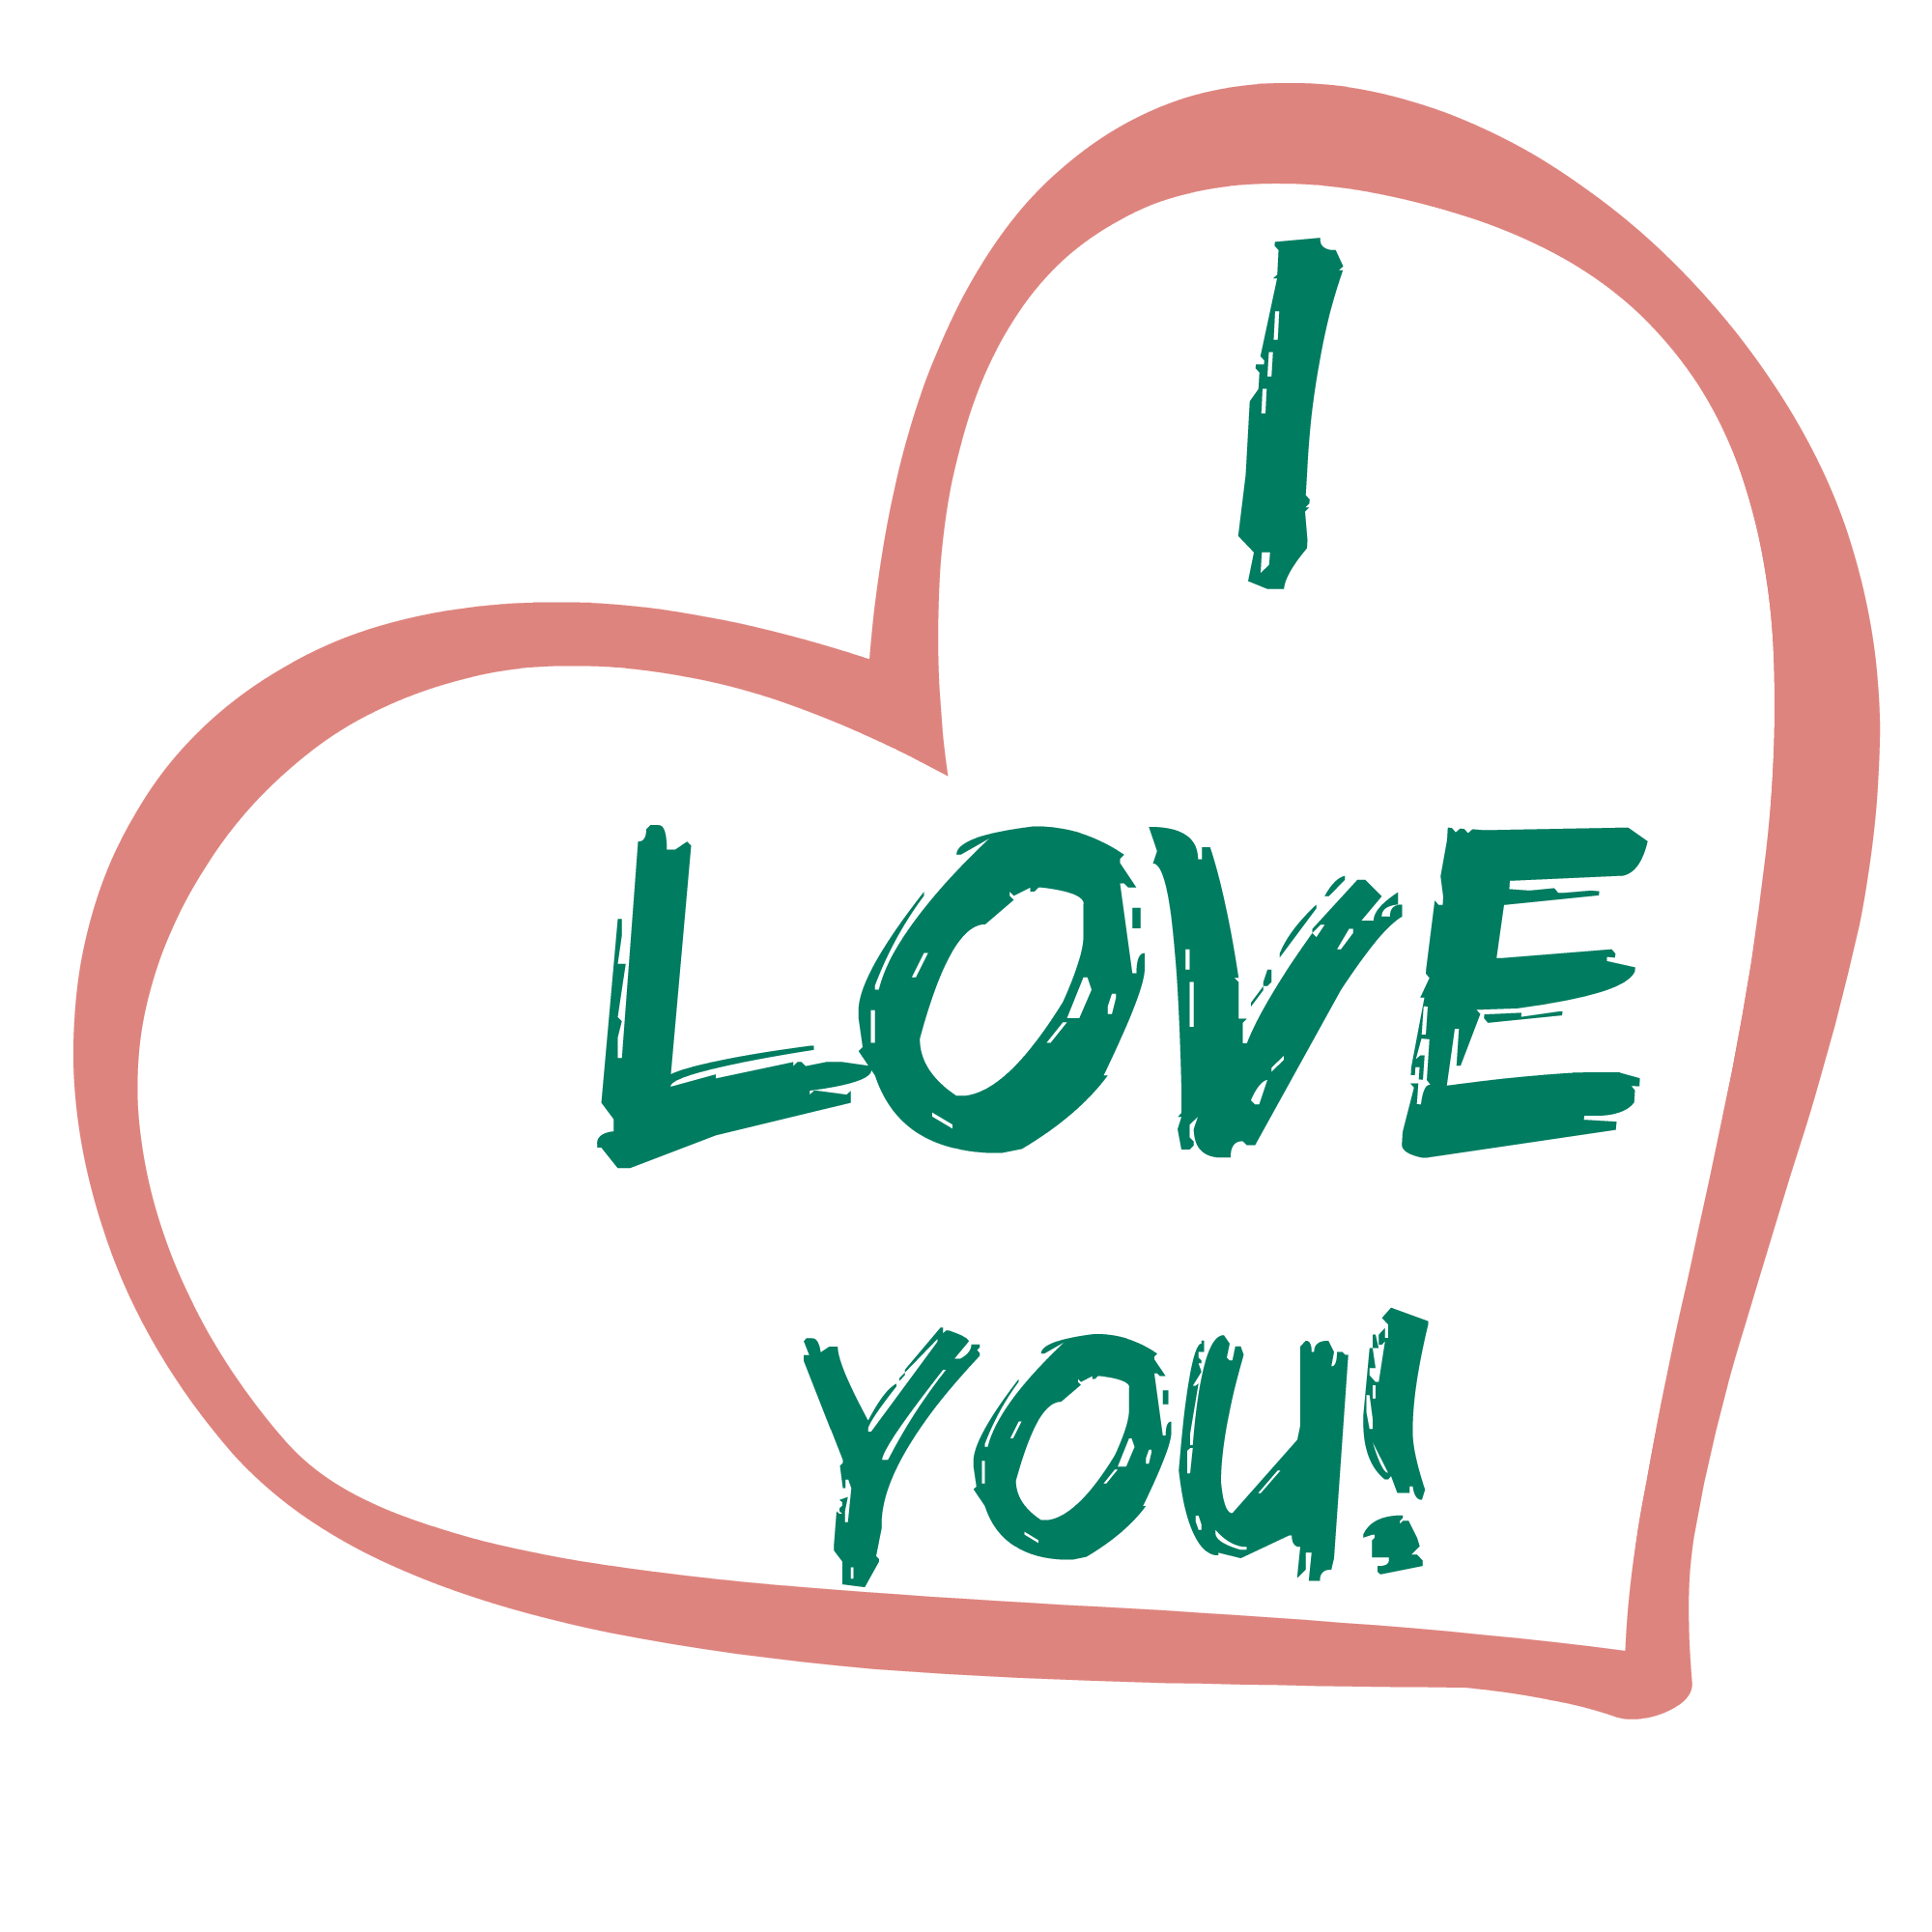 love you png images for download crazypngm #25775